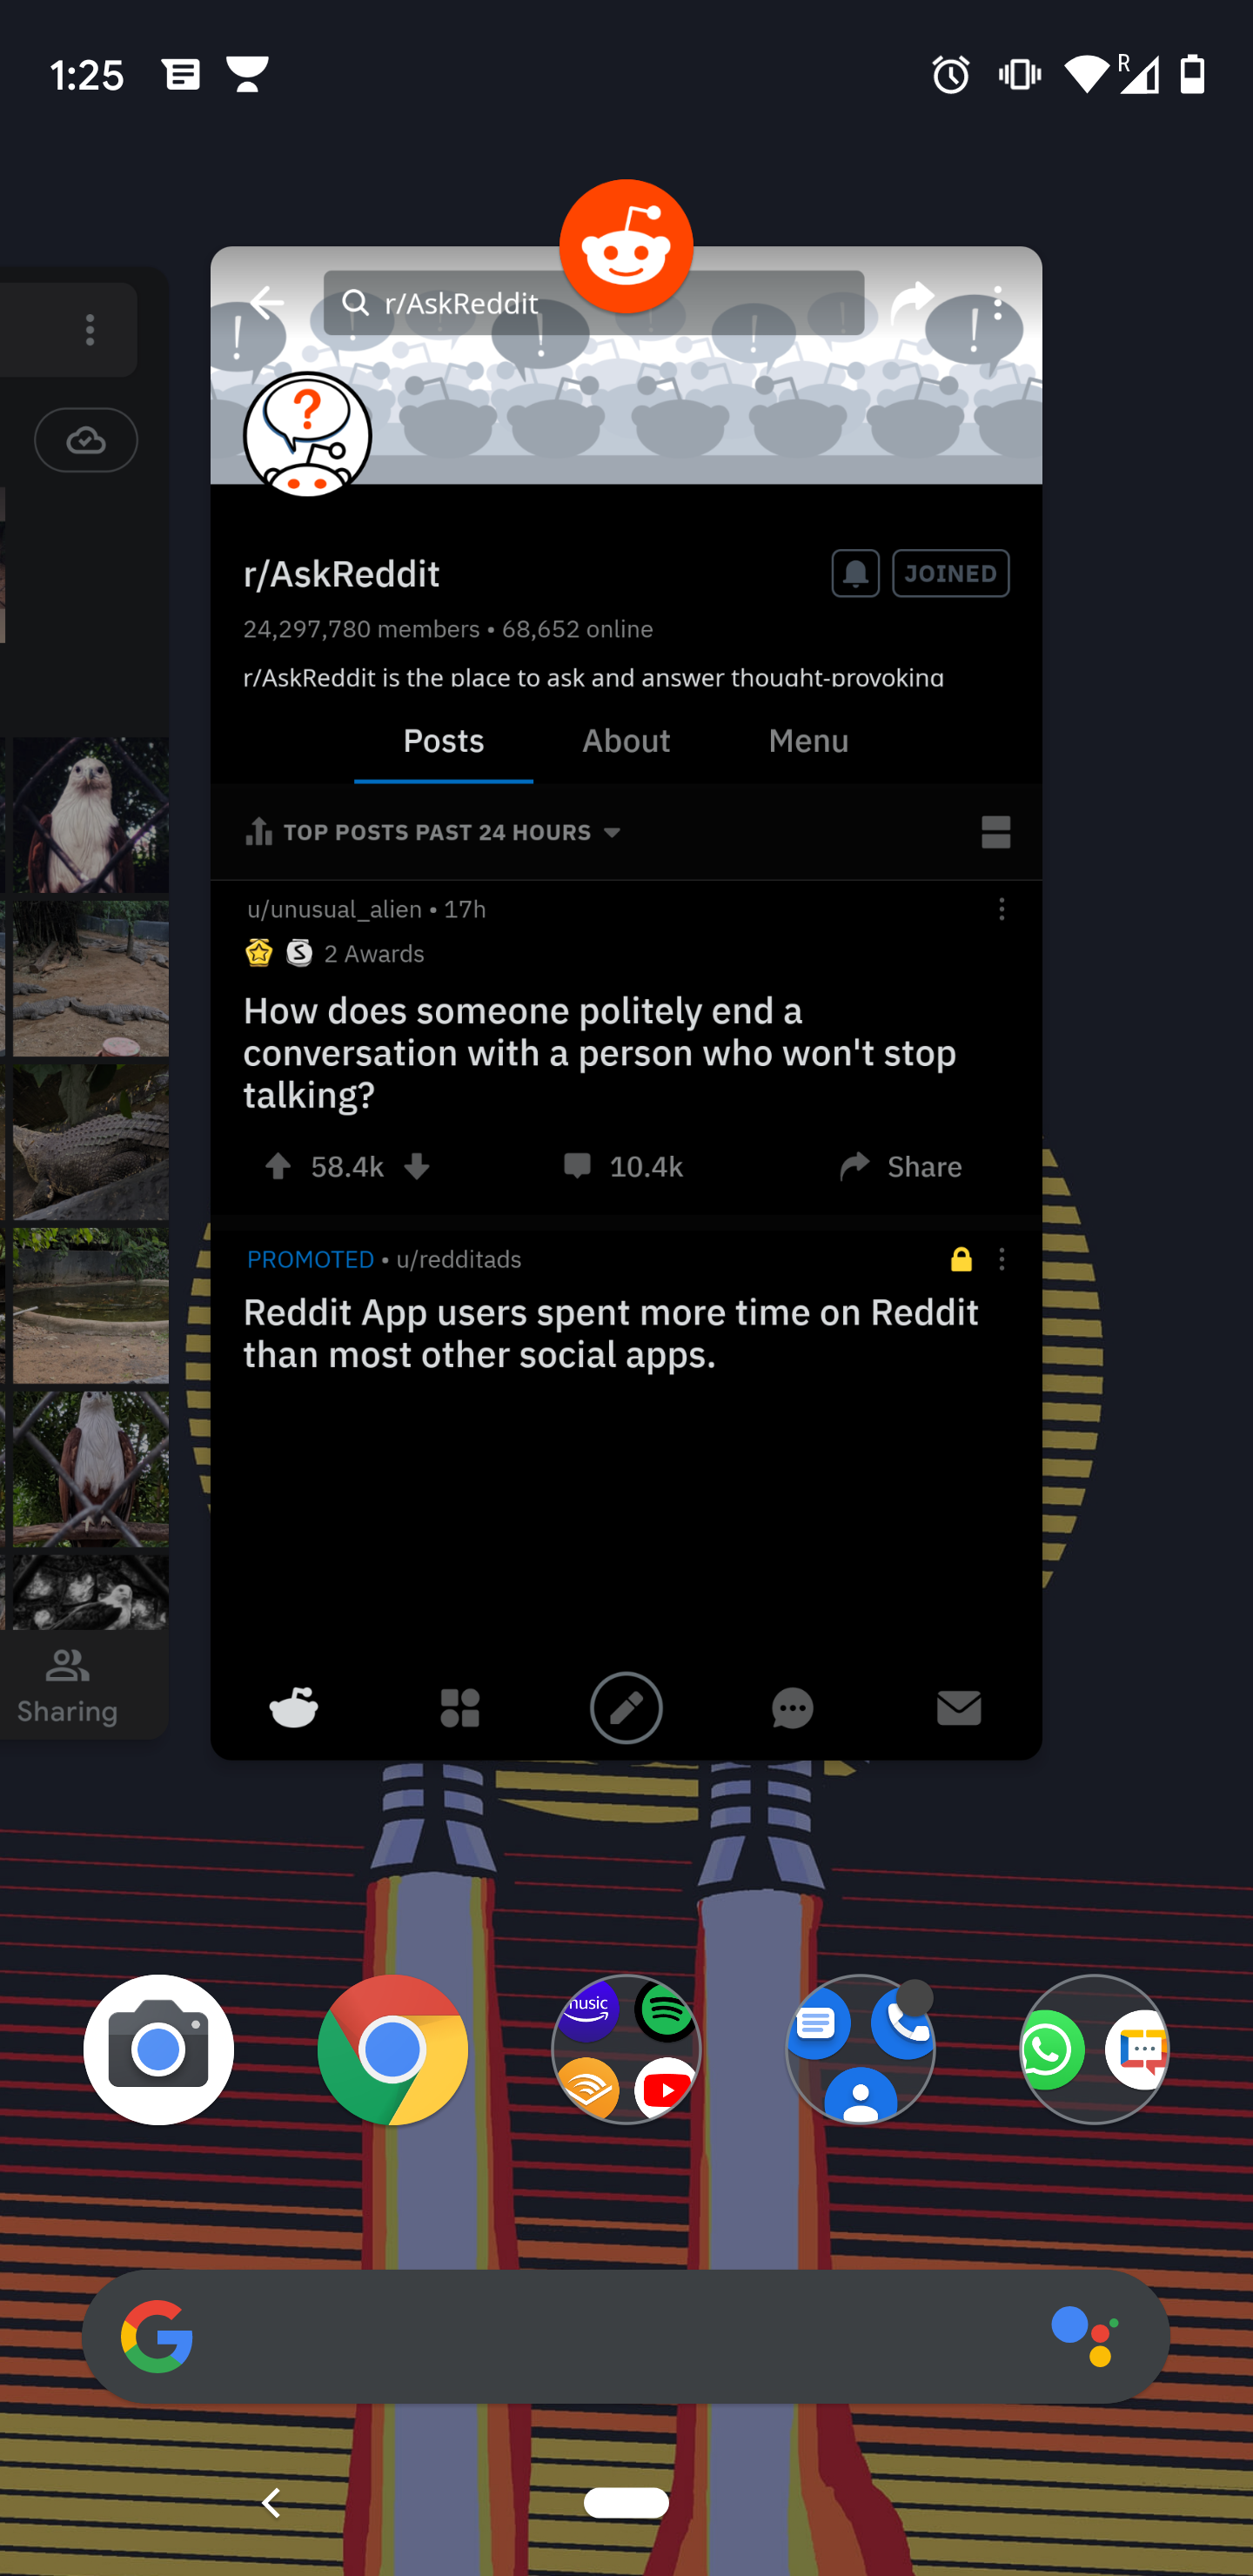 Pixel 3 XL. Android 10: Most used apps list not visible during the short  swipe up for open apps. - Pixel Phone Community